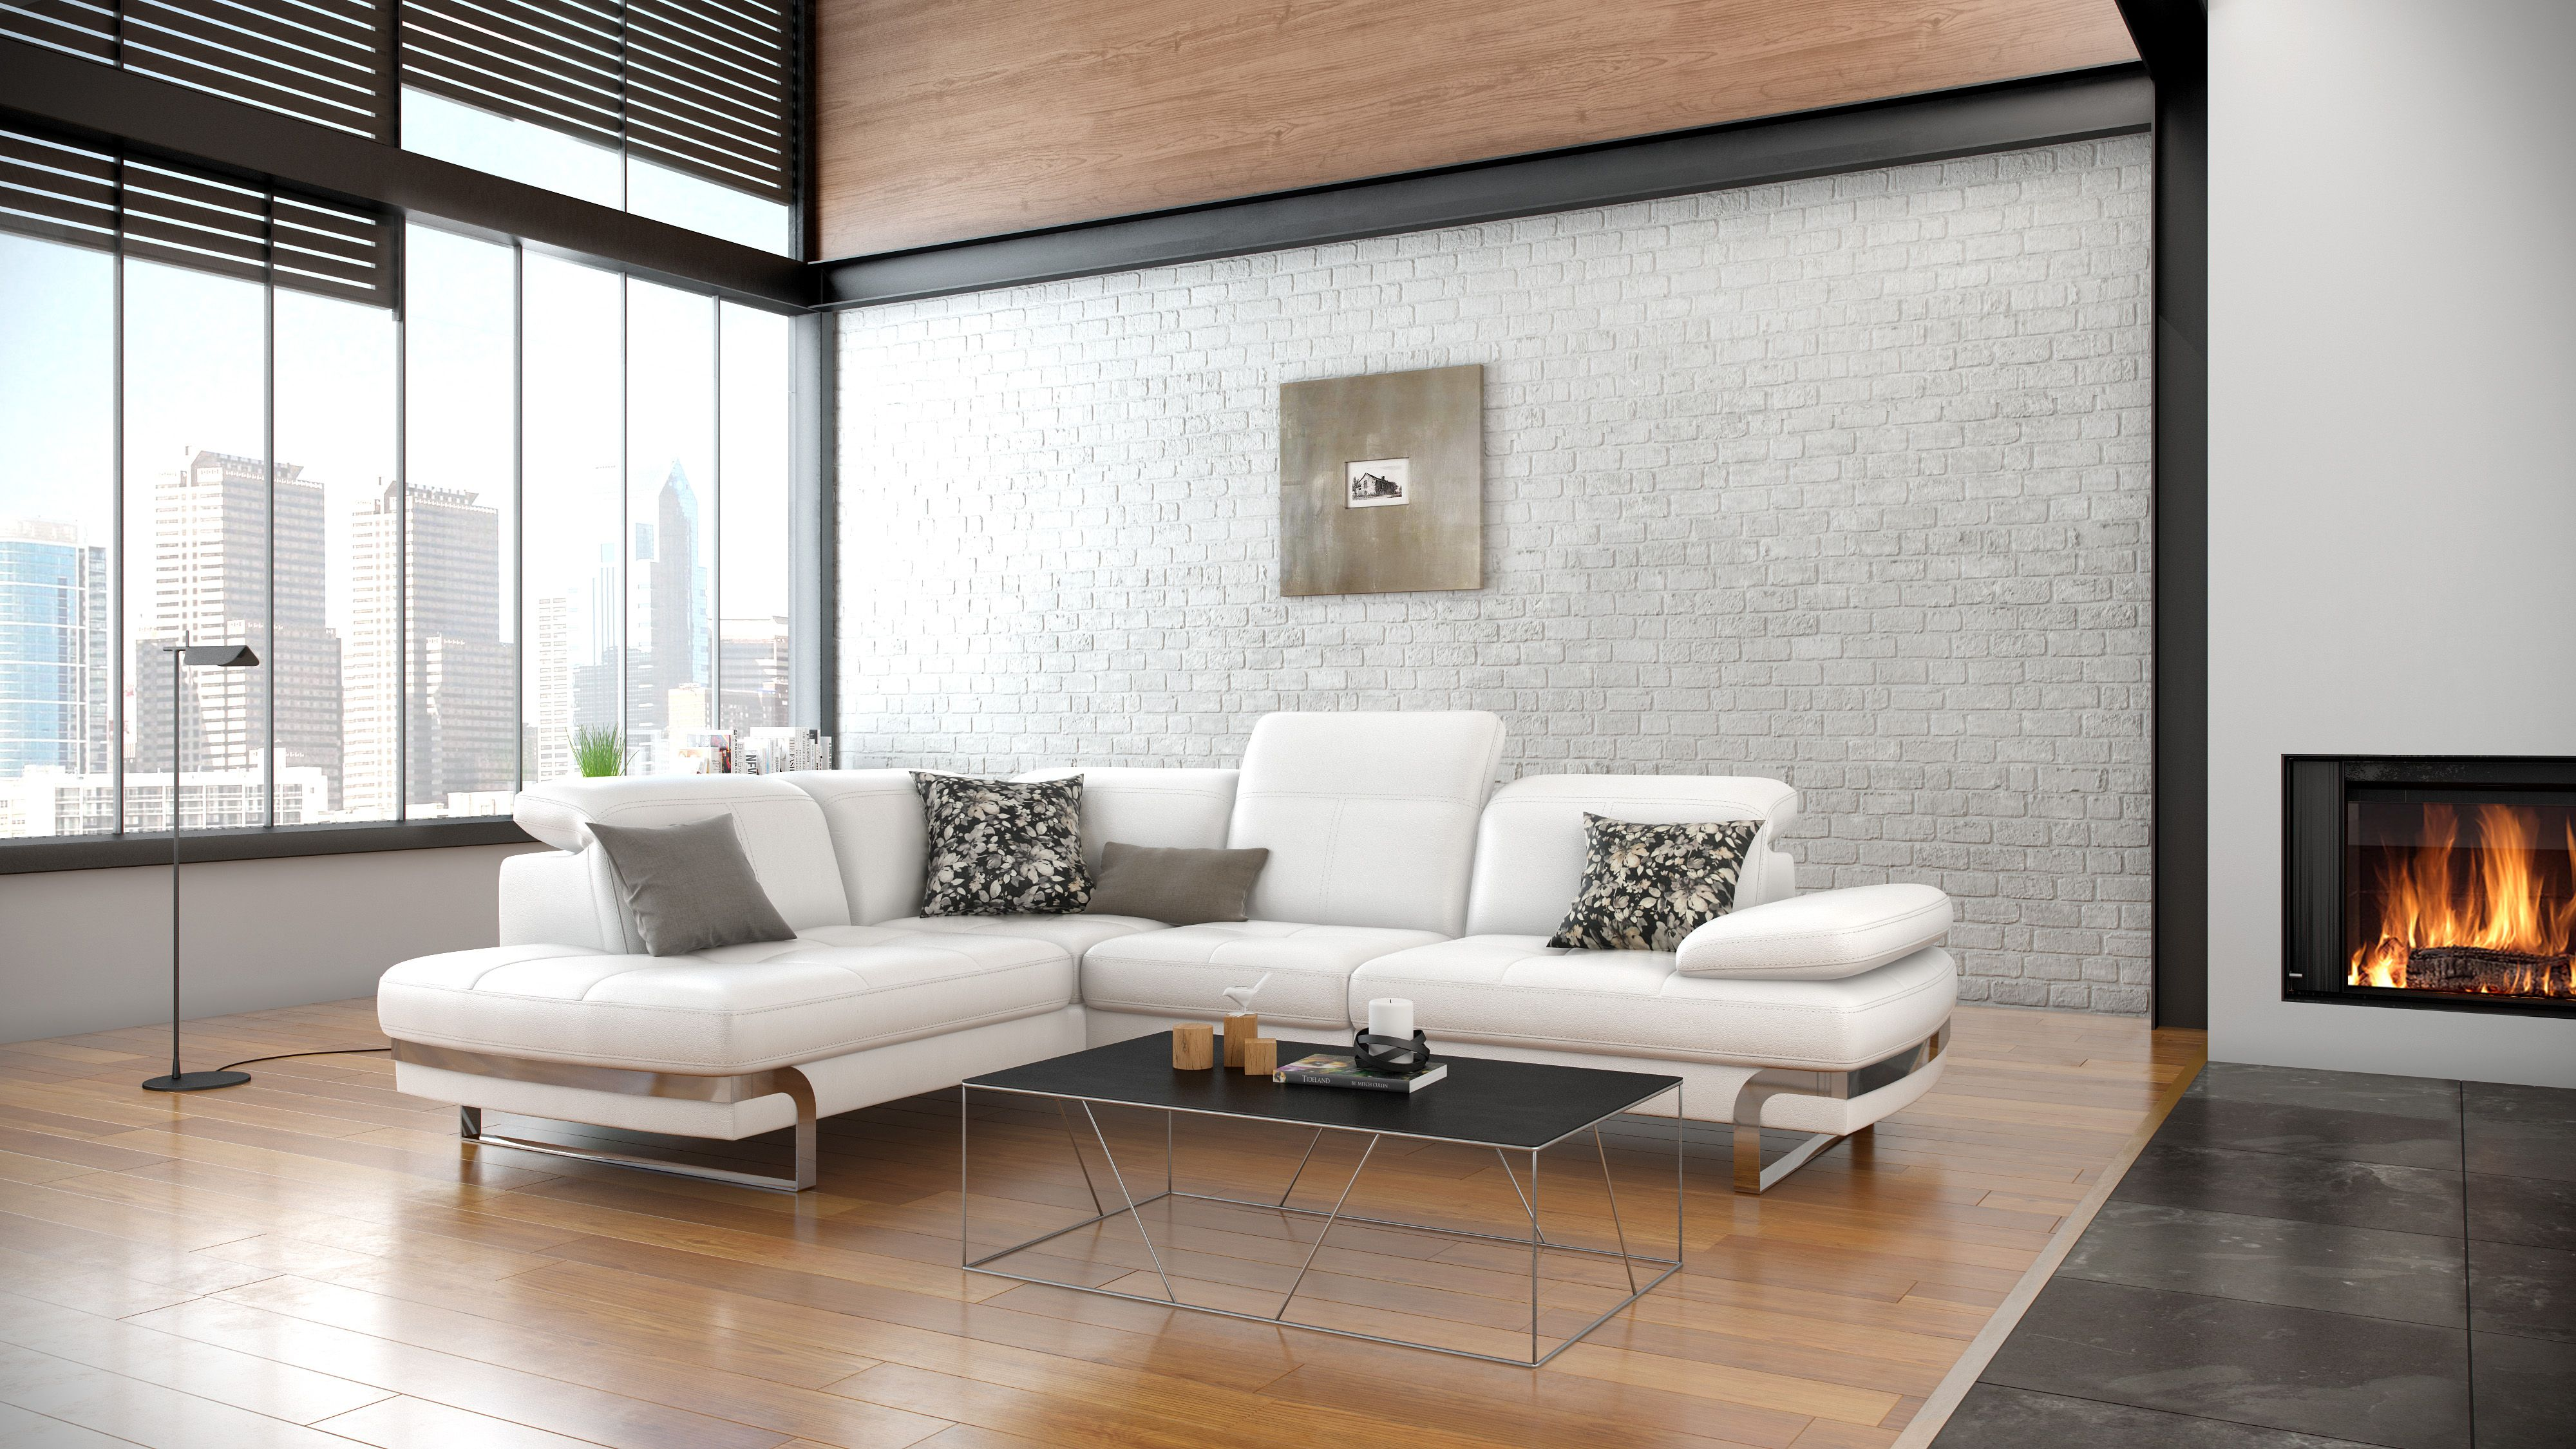 Create a contemporary look in homes with sophisticated seating ...